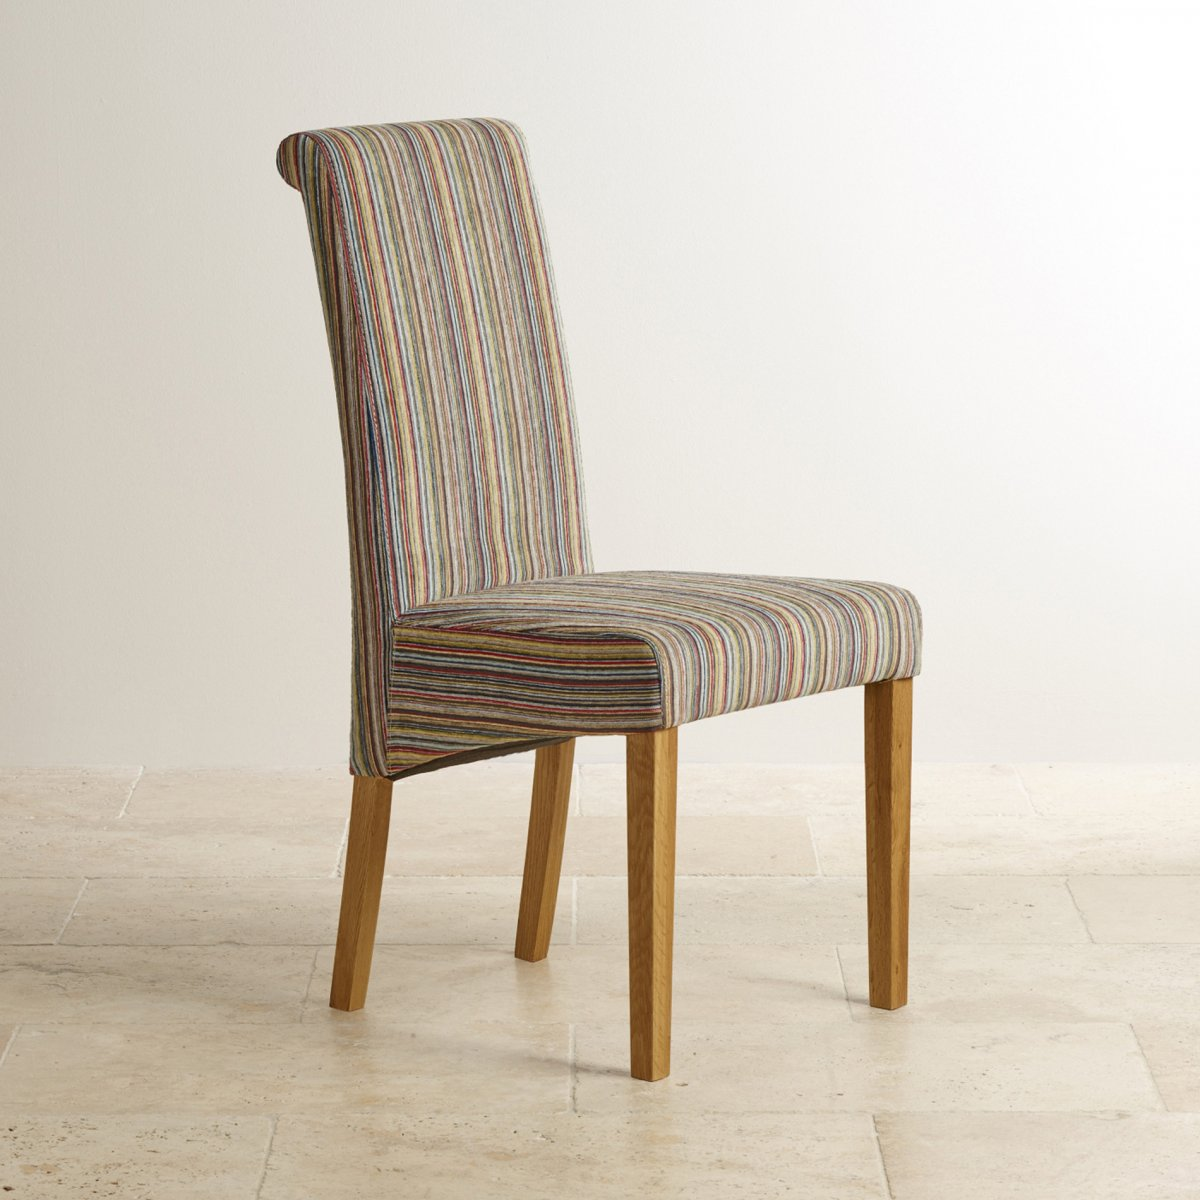 Scroll Back Dining Chair In Striped Multicoloured Fabric